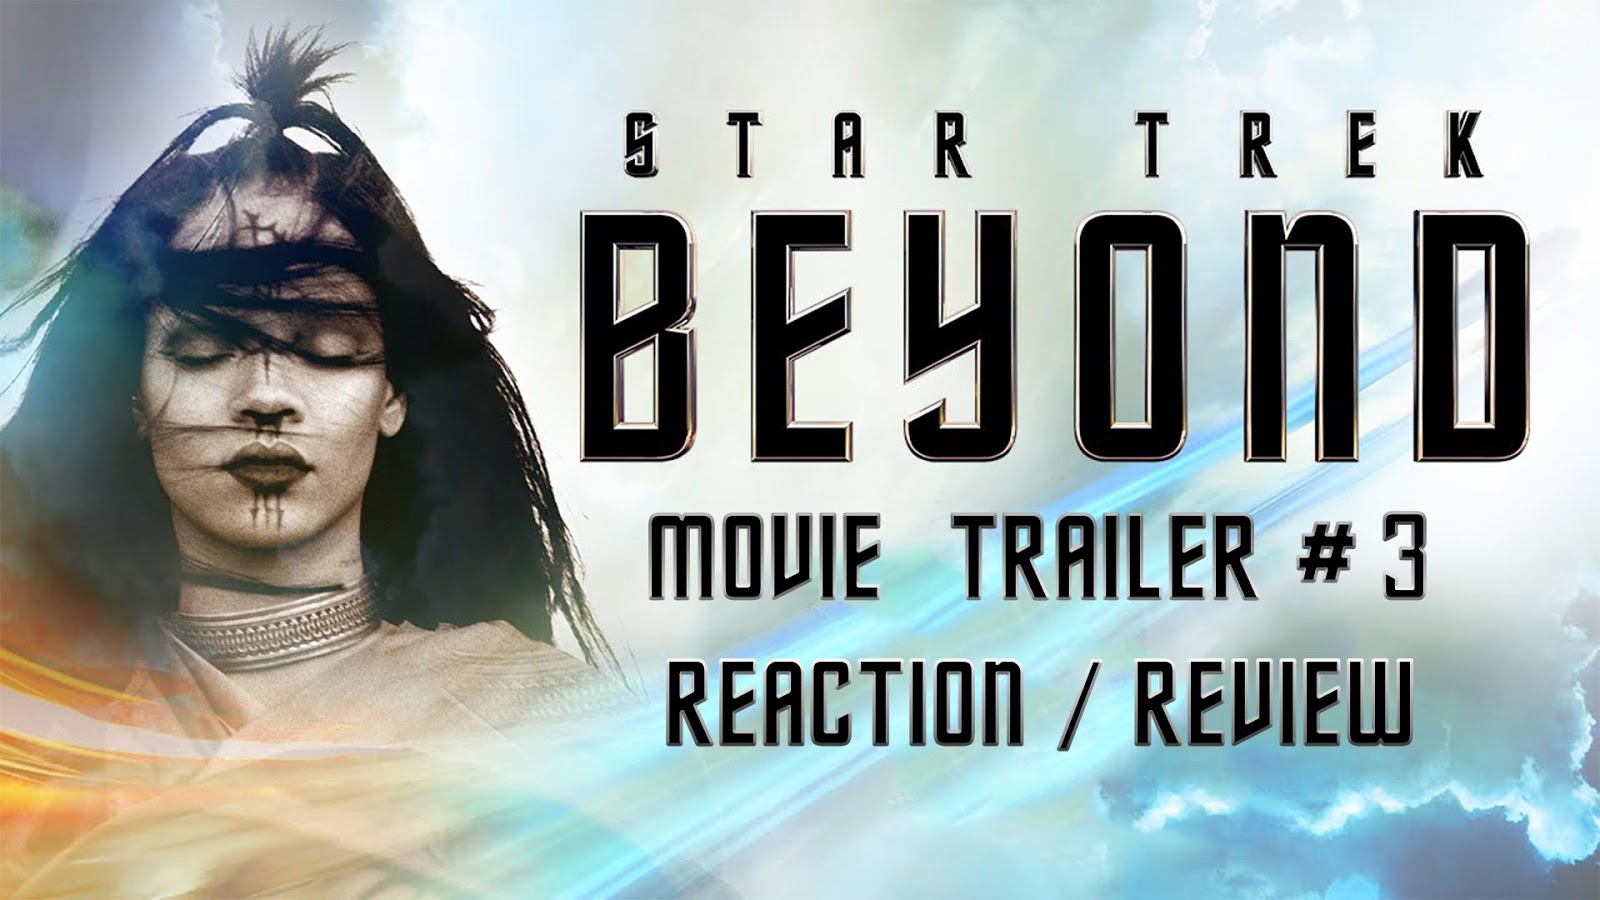 reaction to trailer for Star Trek Beyond